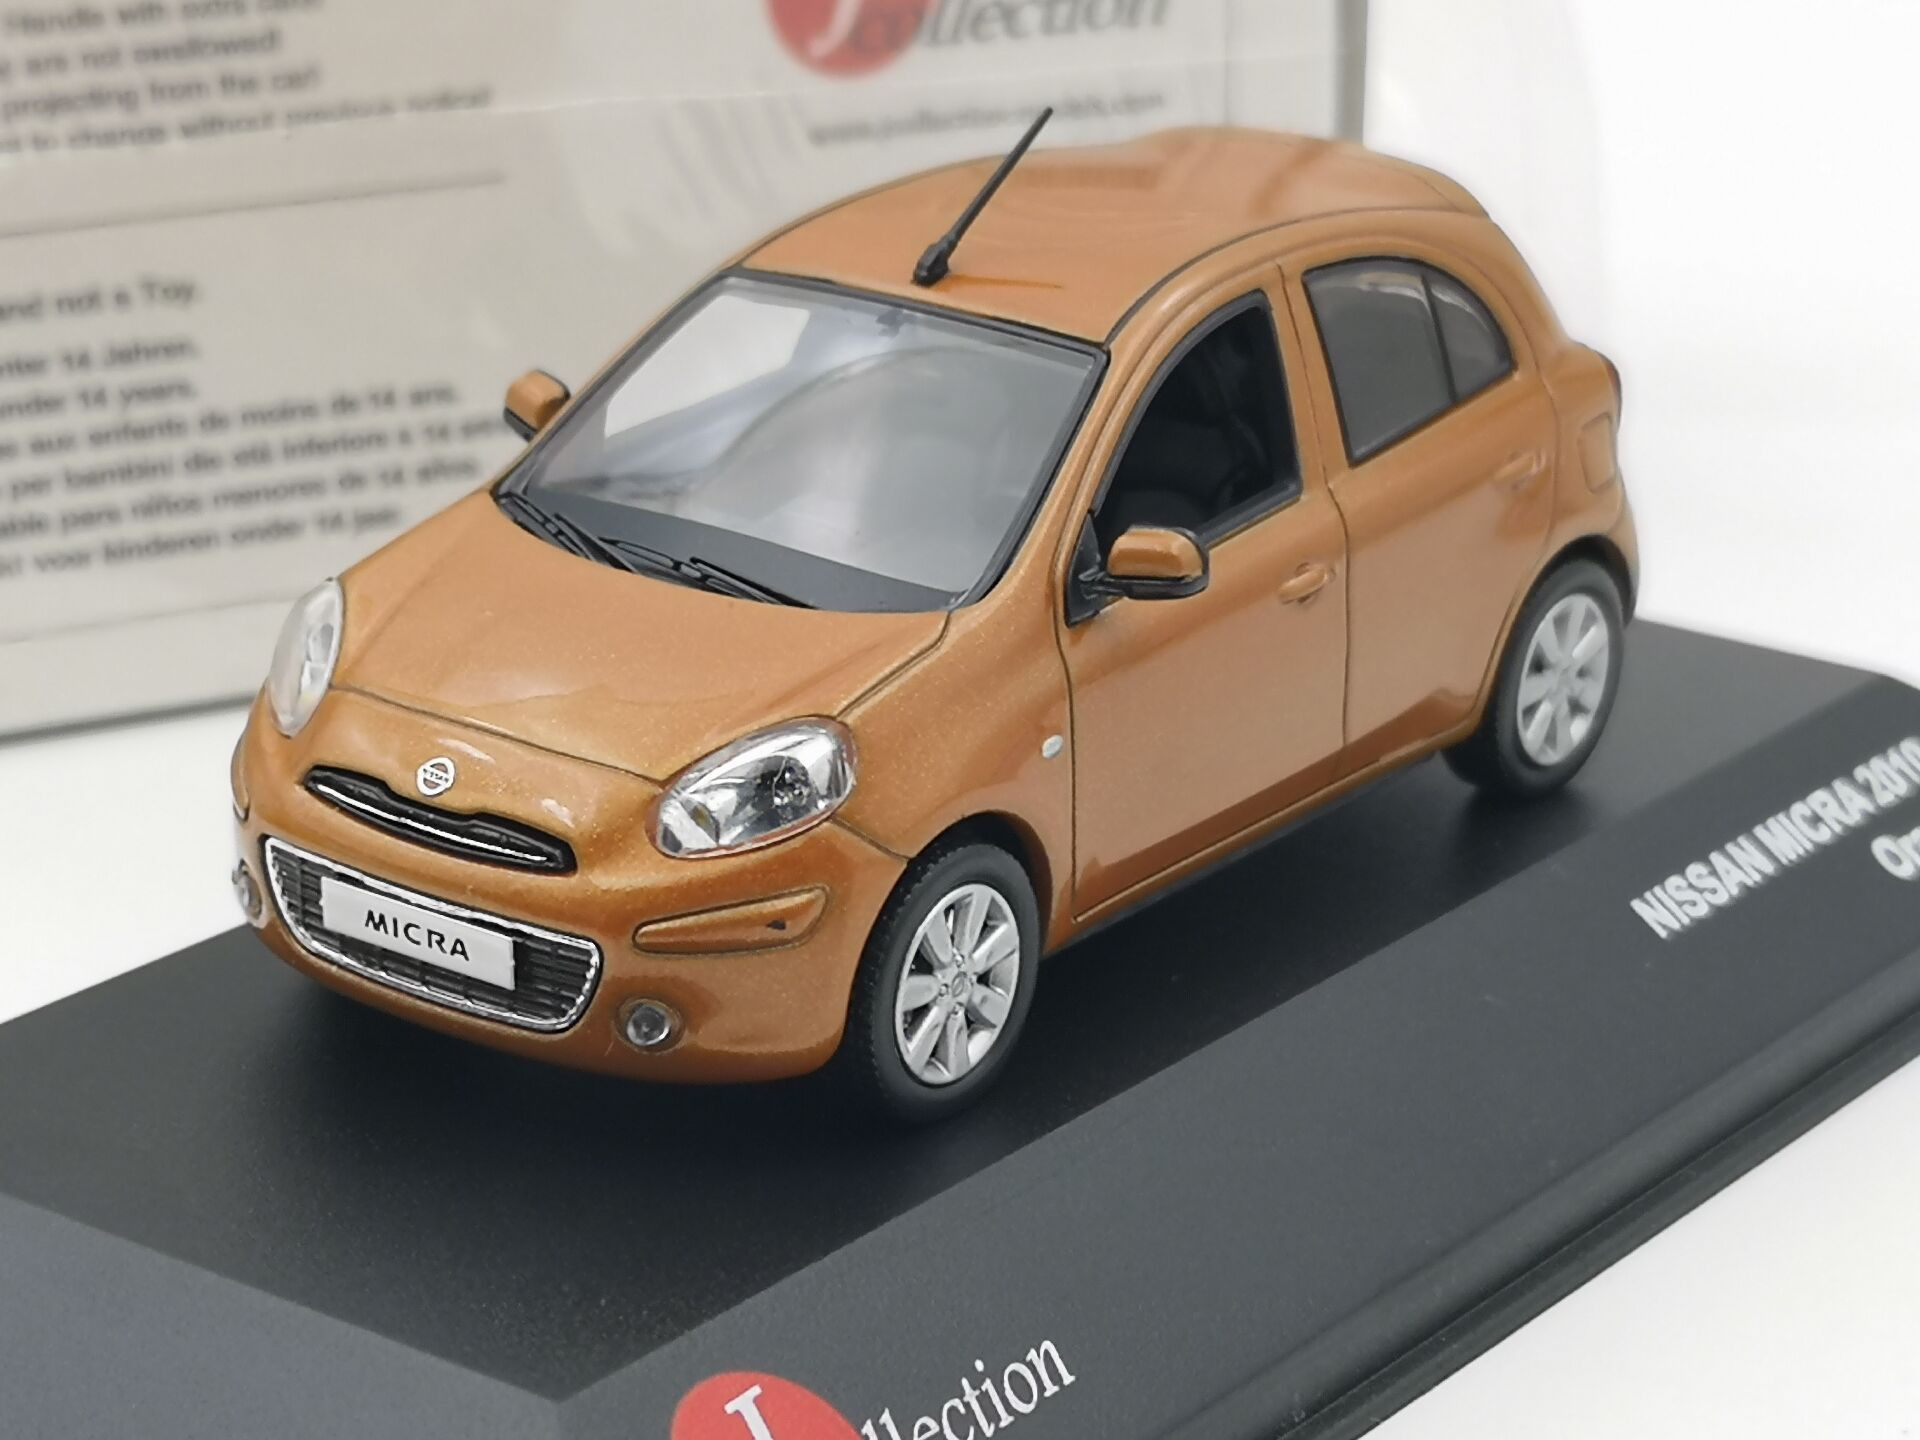 jc 1 43 nissan micra 2010 orange boutique alloy car toys for children kids toys model original